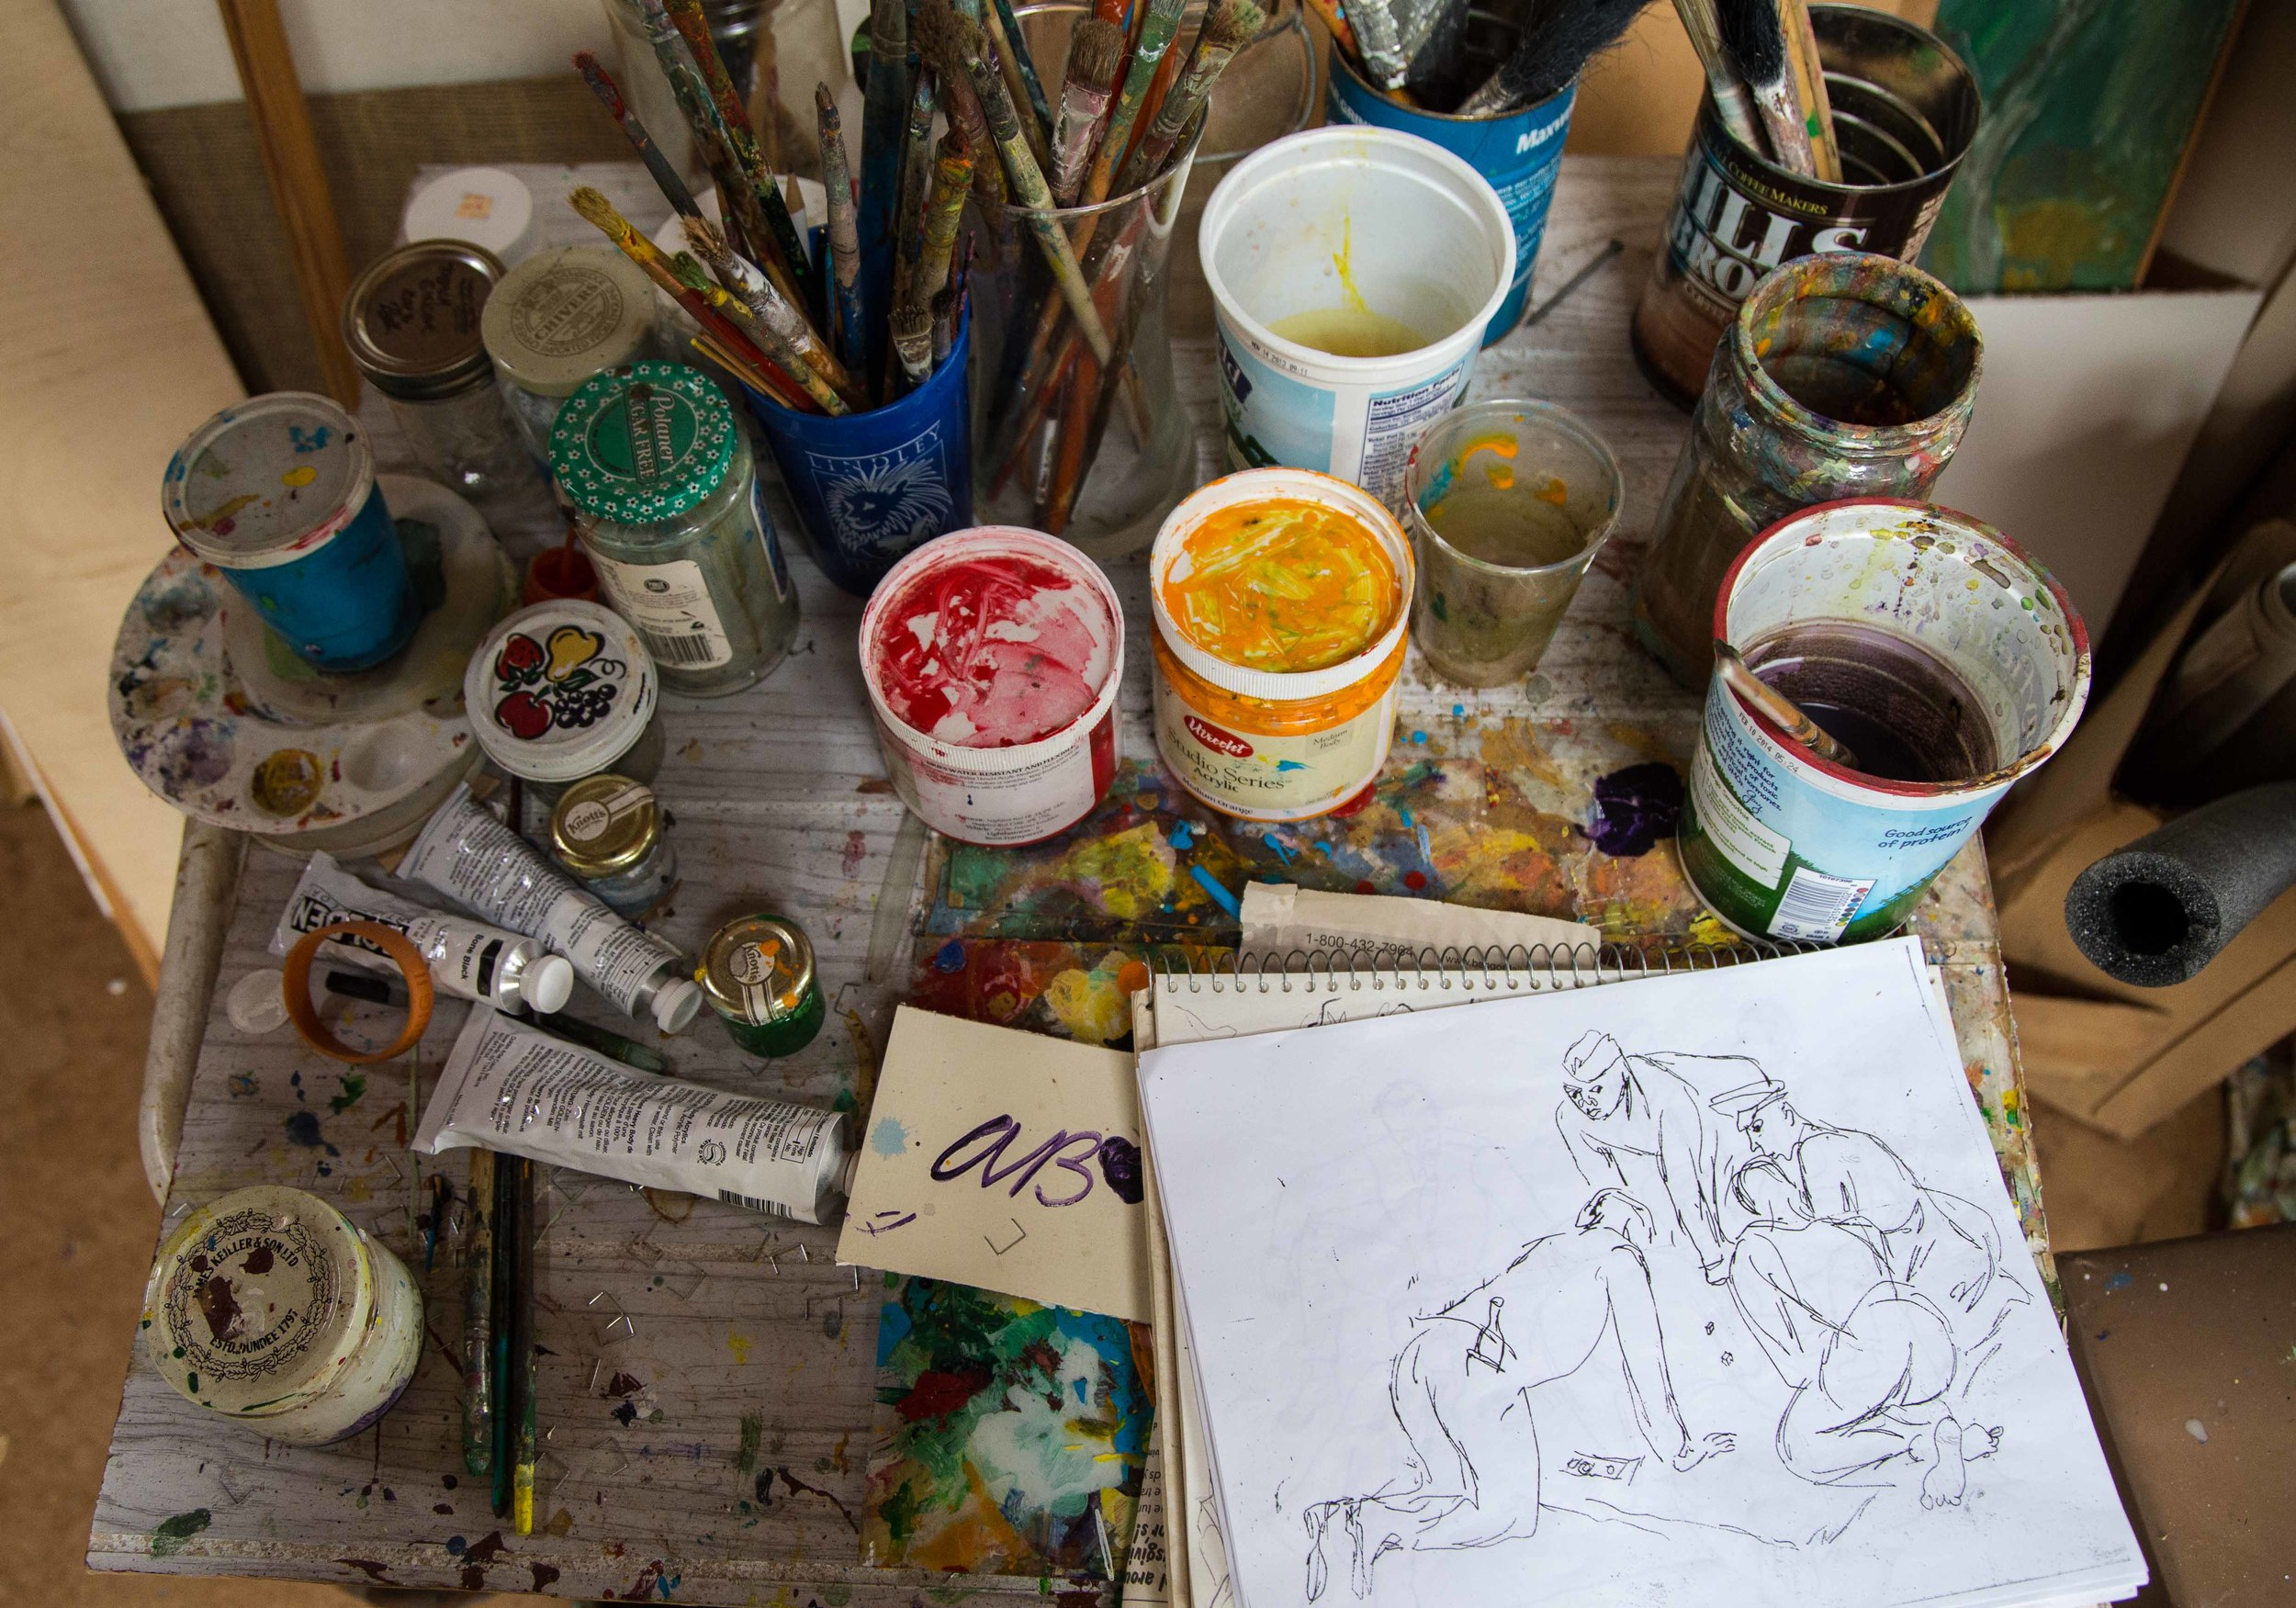 Ashley's studio, filled with a million wonderful details.